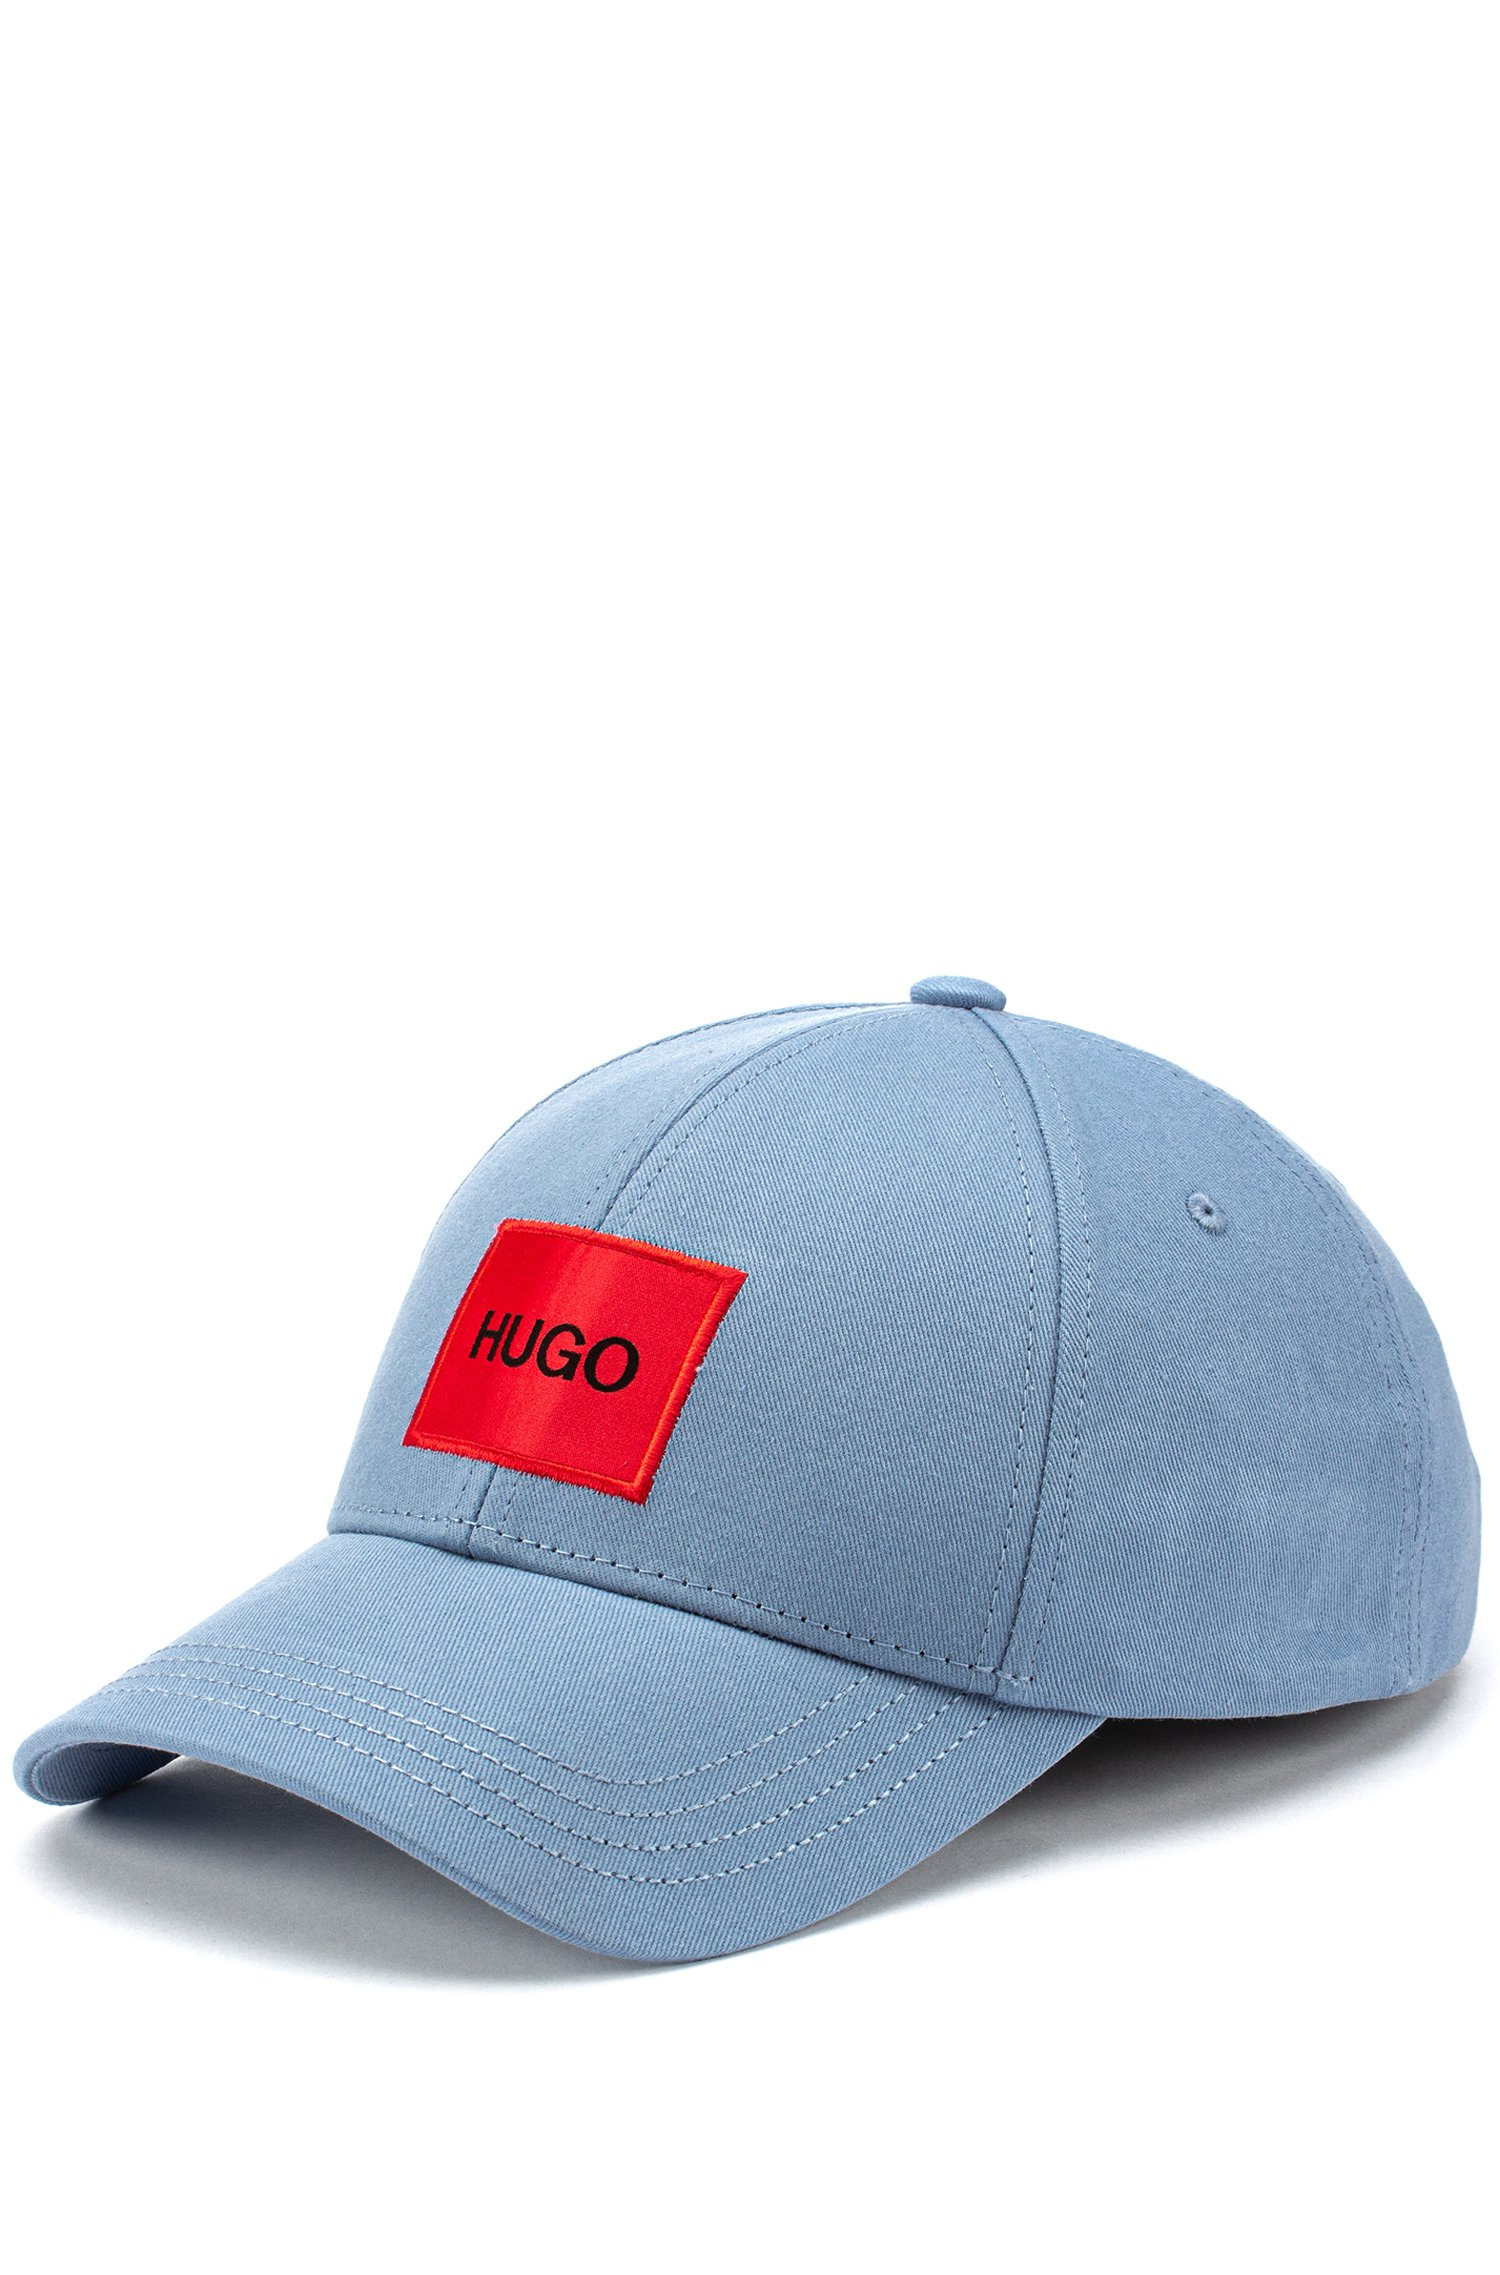 Cap in cotton twill with red logo label, Blue